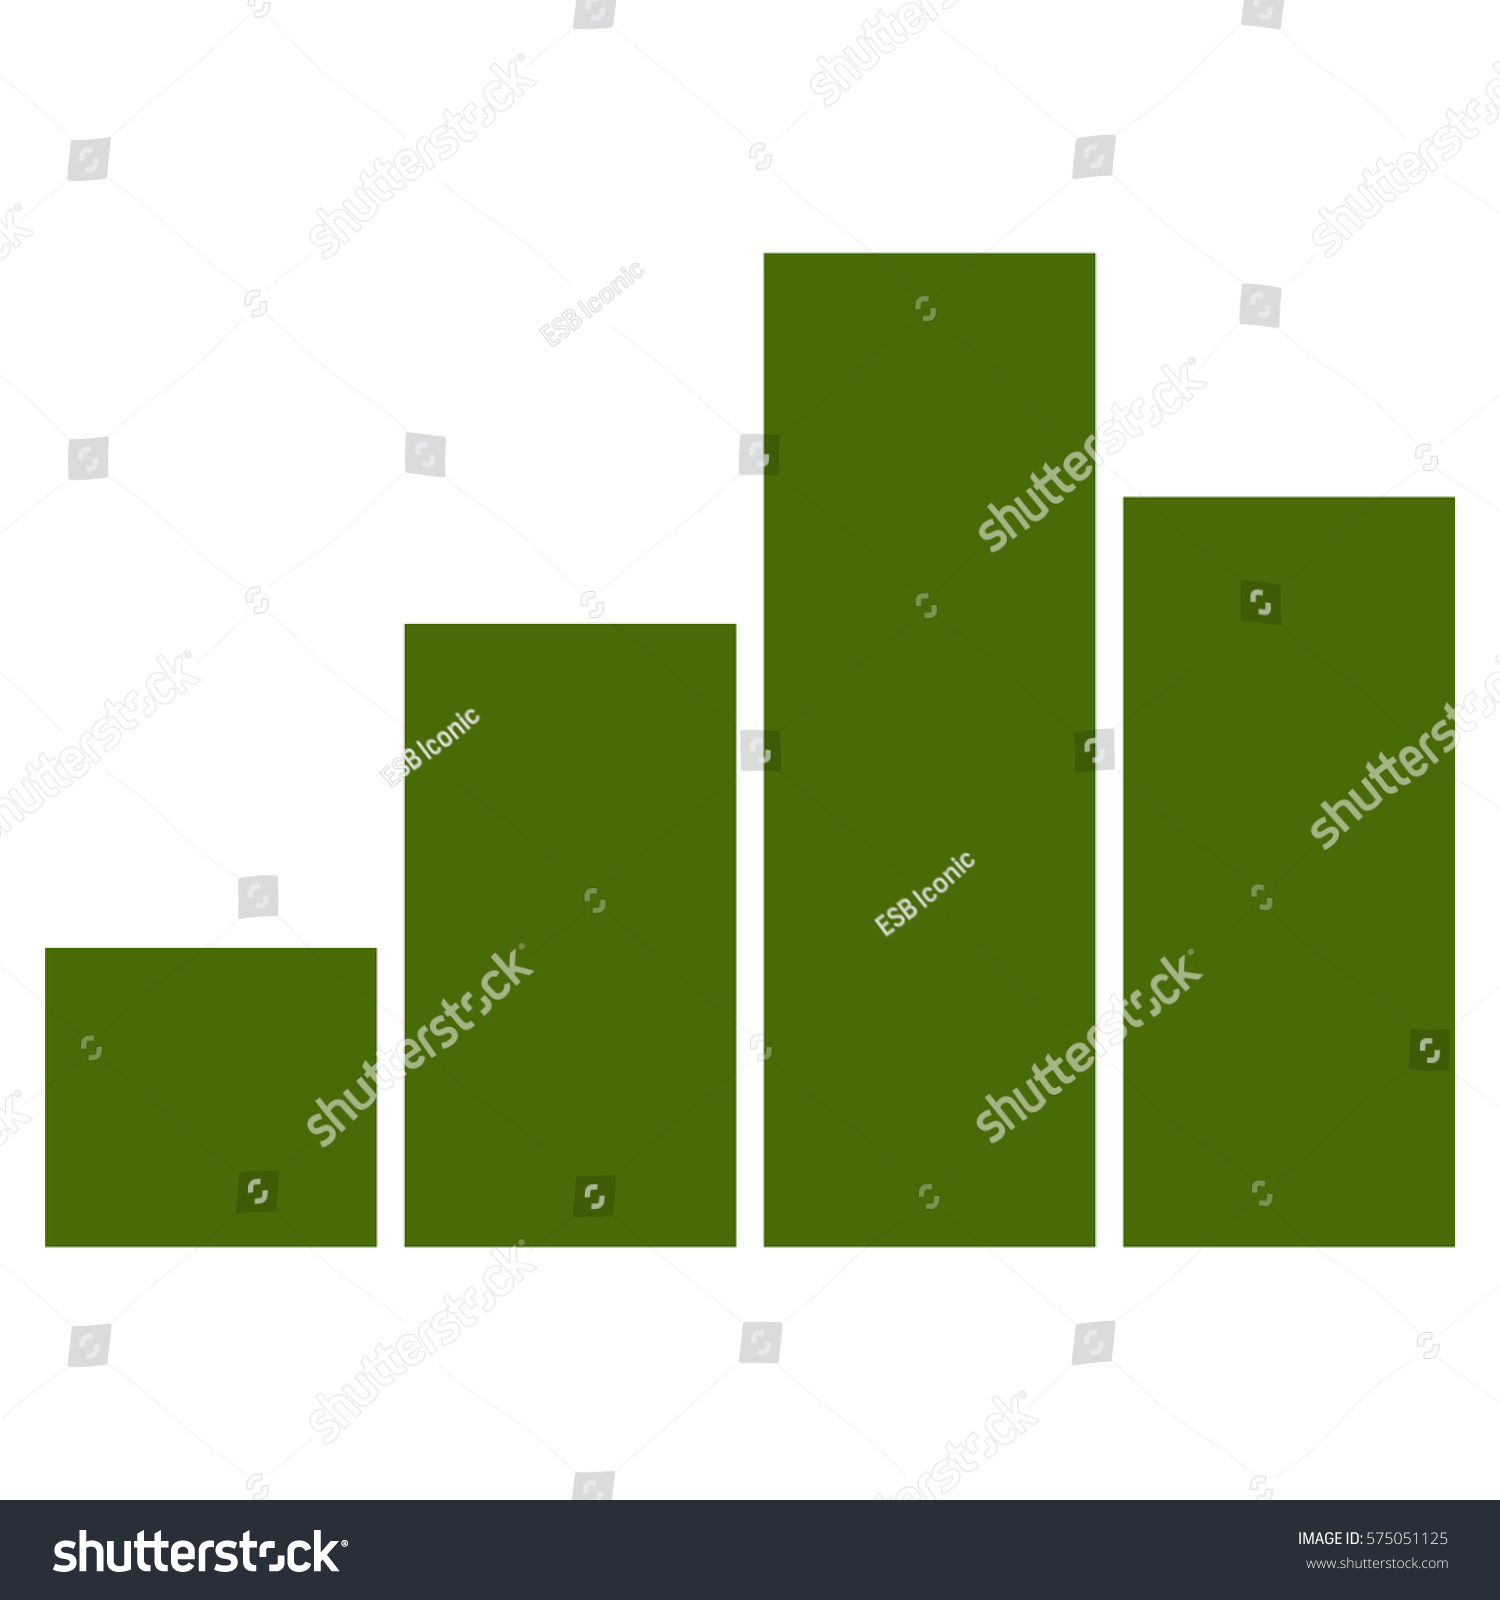 stock vector vector illustration of bar chart in green icon 575051125 swot icon wiring diagrams wiring diagrams flat design letters for th8320r1003 wiring diagrams at edmiracle.co